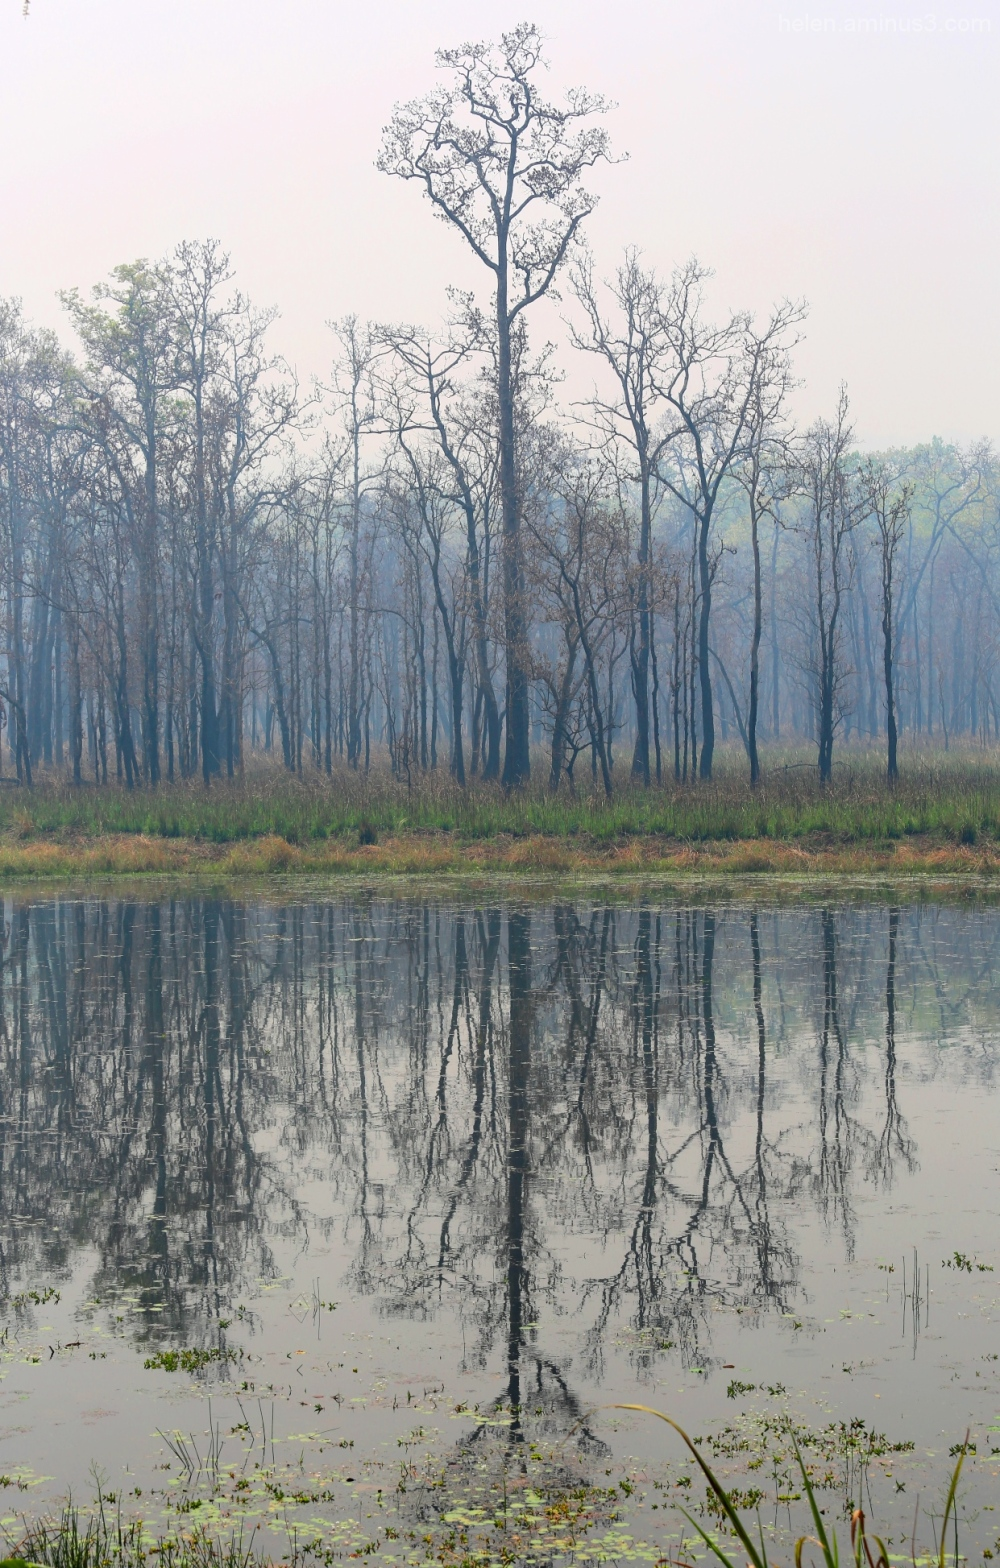 Reflections of Chitwan